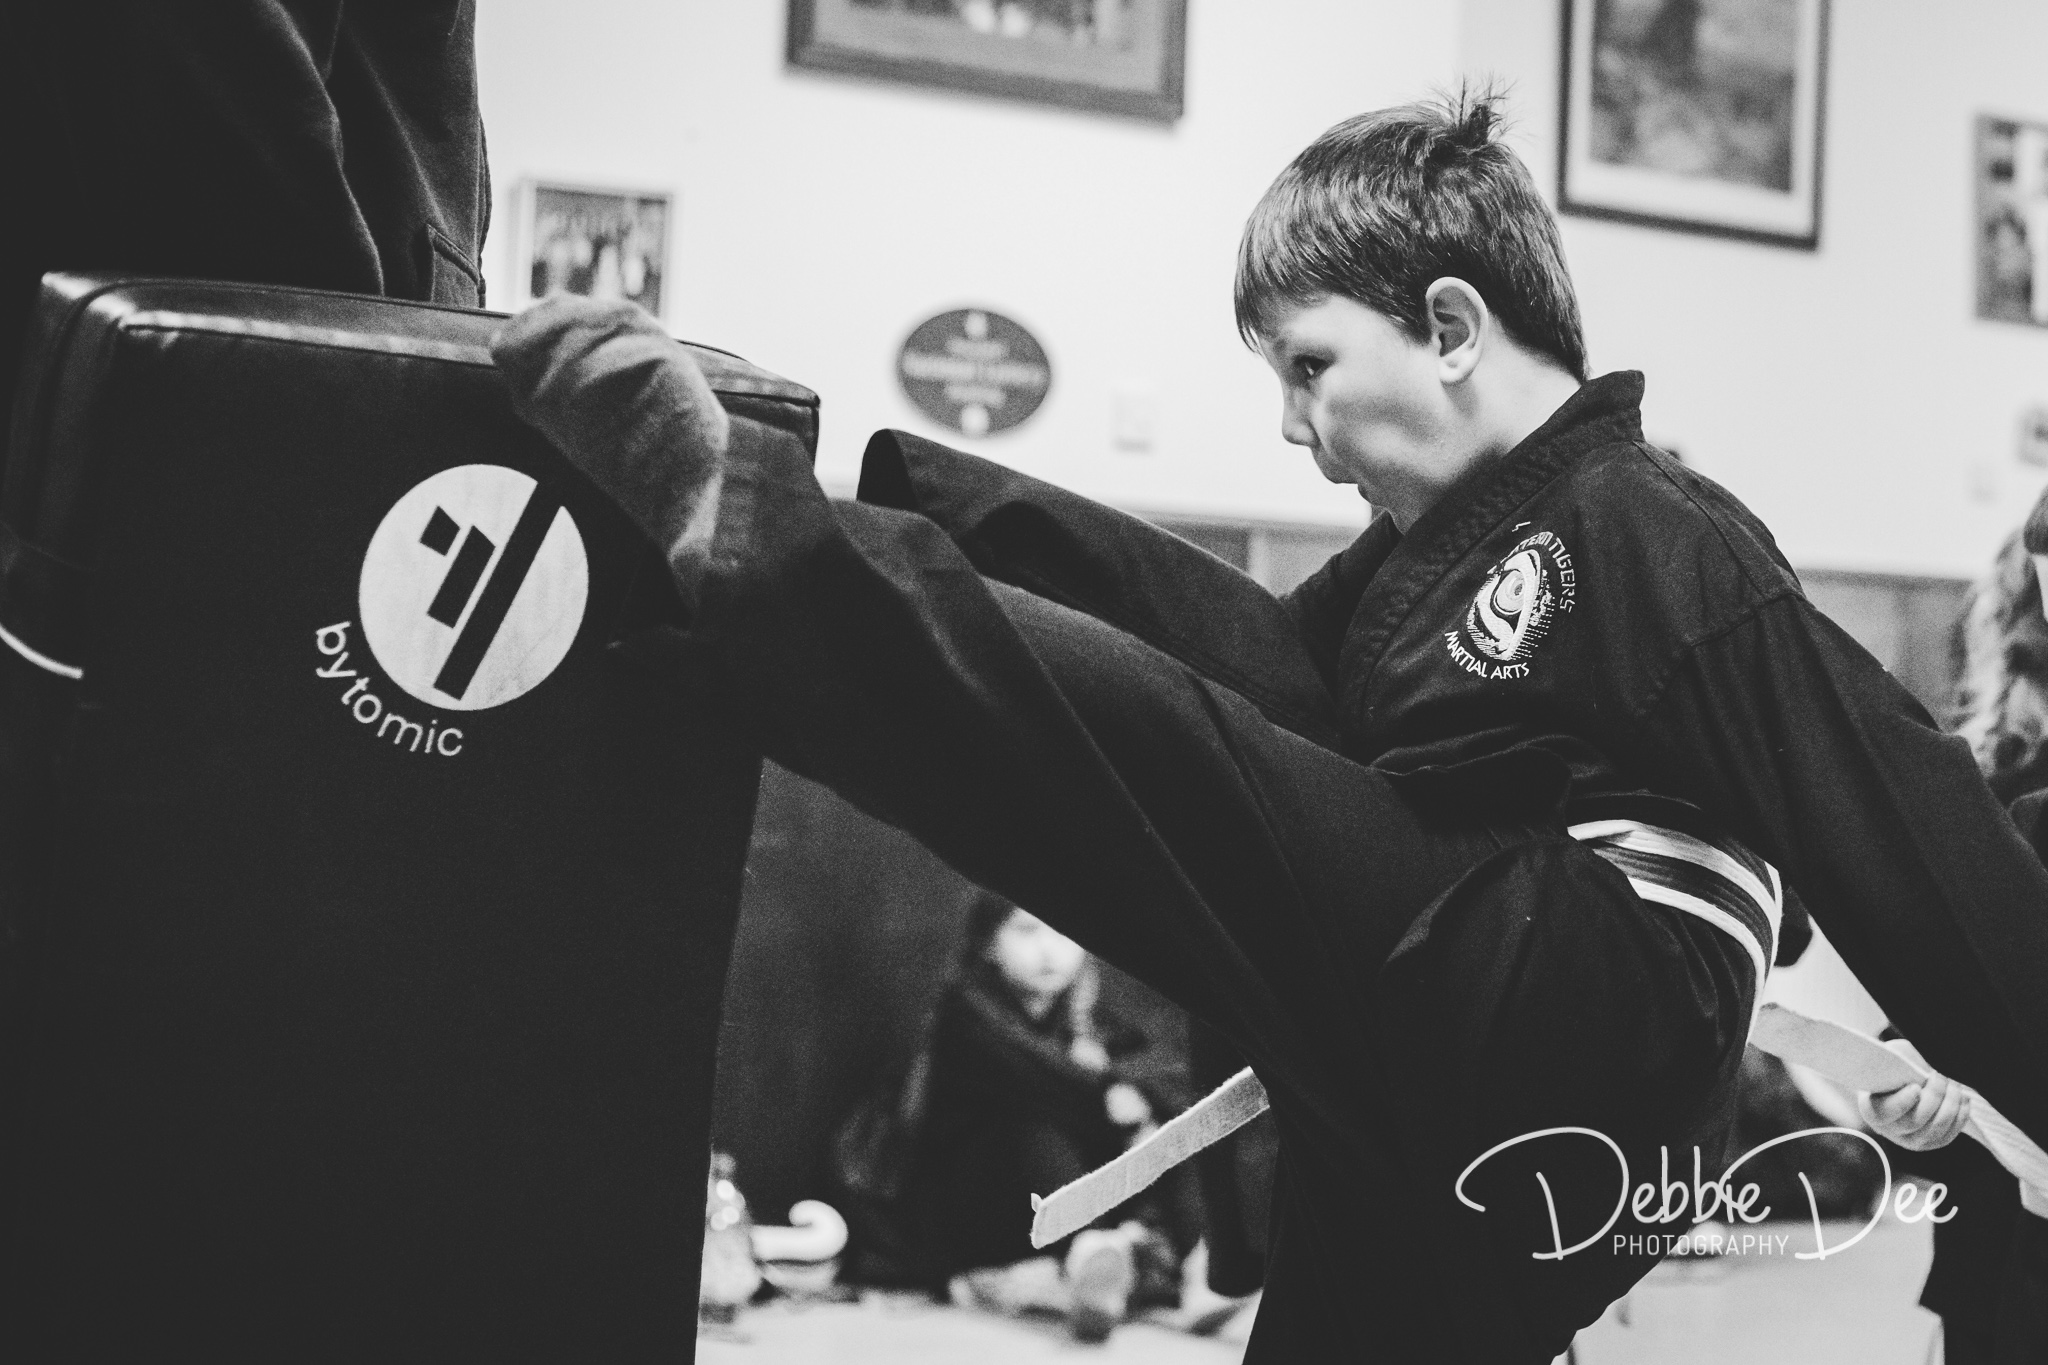 Eastern tigers martial arts boy kicking